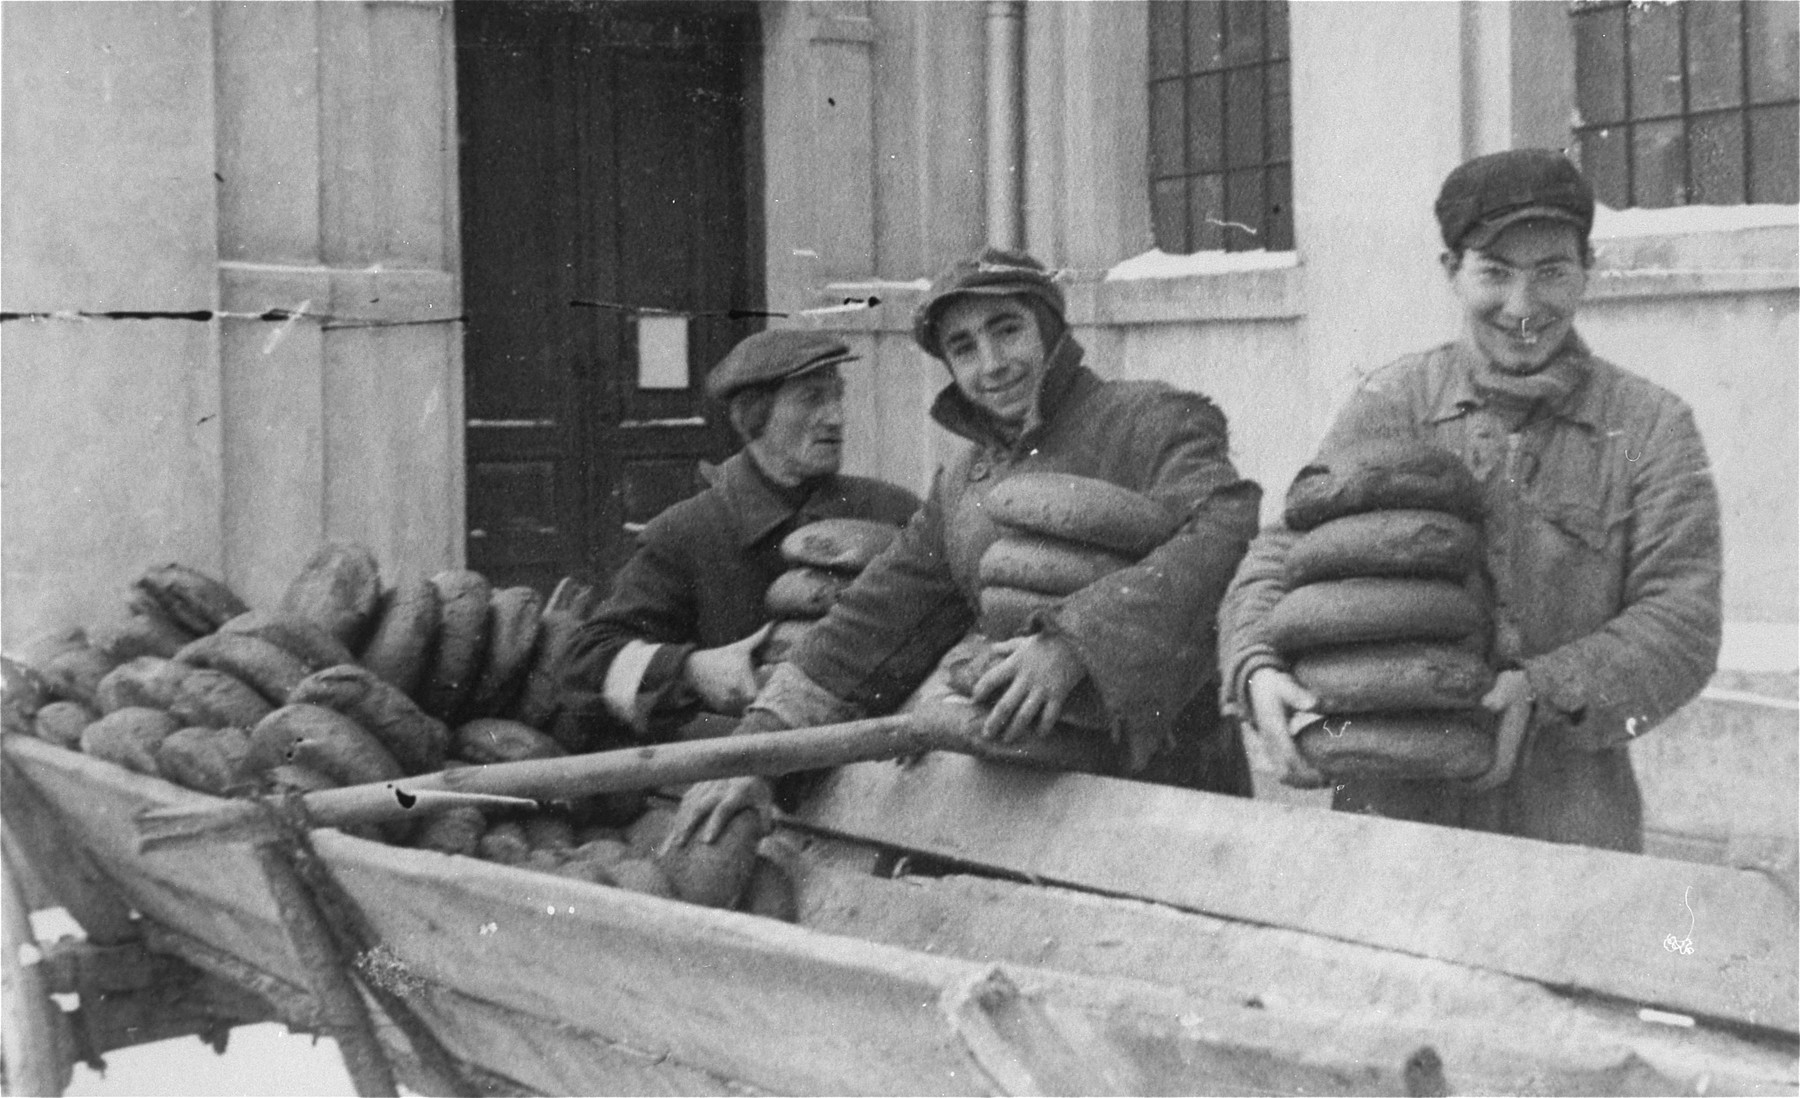 Jewish men and youths remove loaves of bread from a wagon at the soup kitchen in the Kielce ghetto.  This photo was one the images included in an official album prepared by the Judenrat of the Kielce ghetto in 1942.